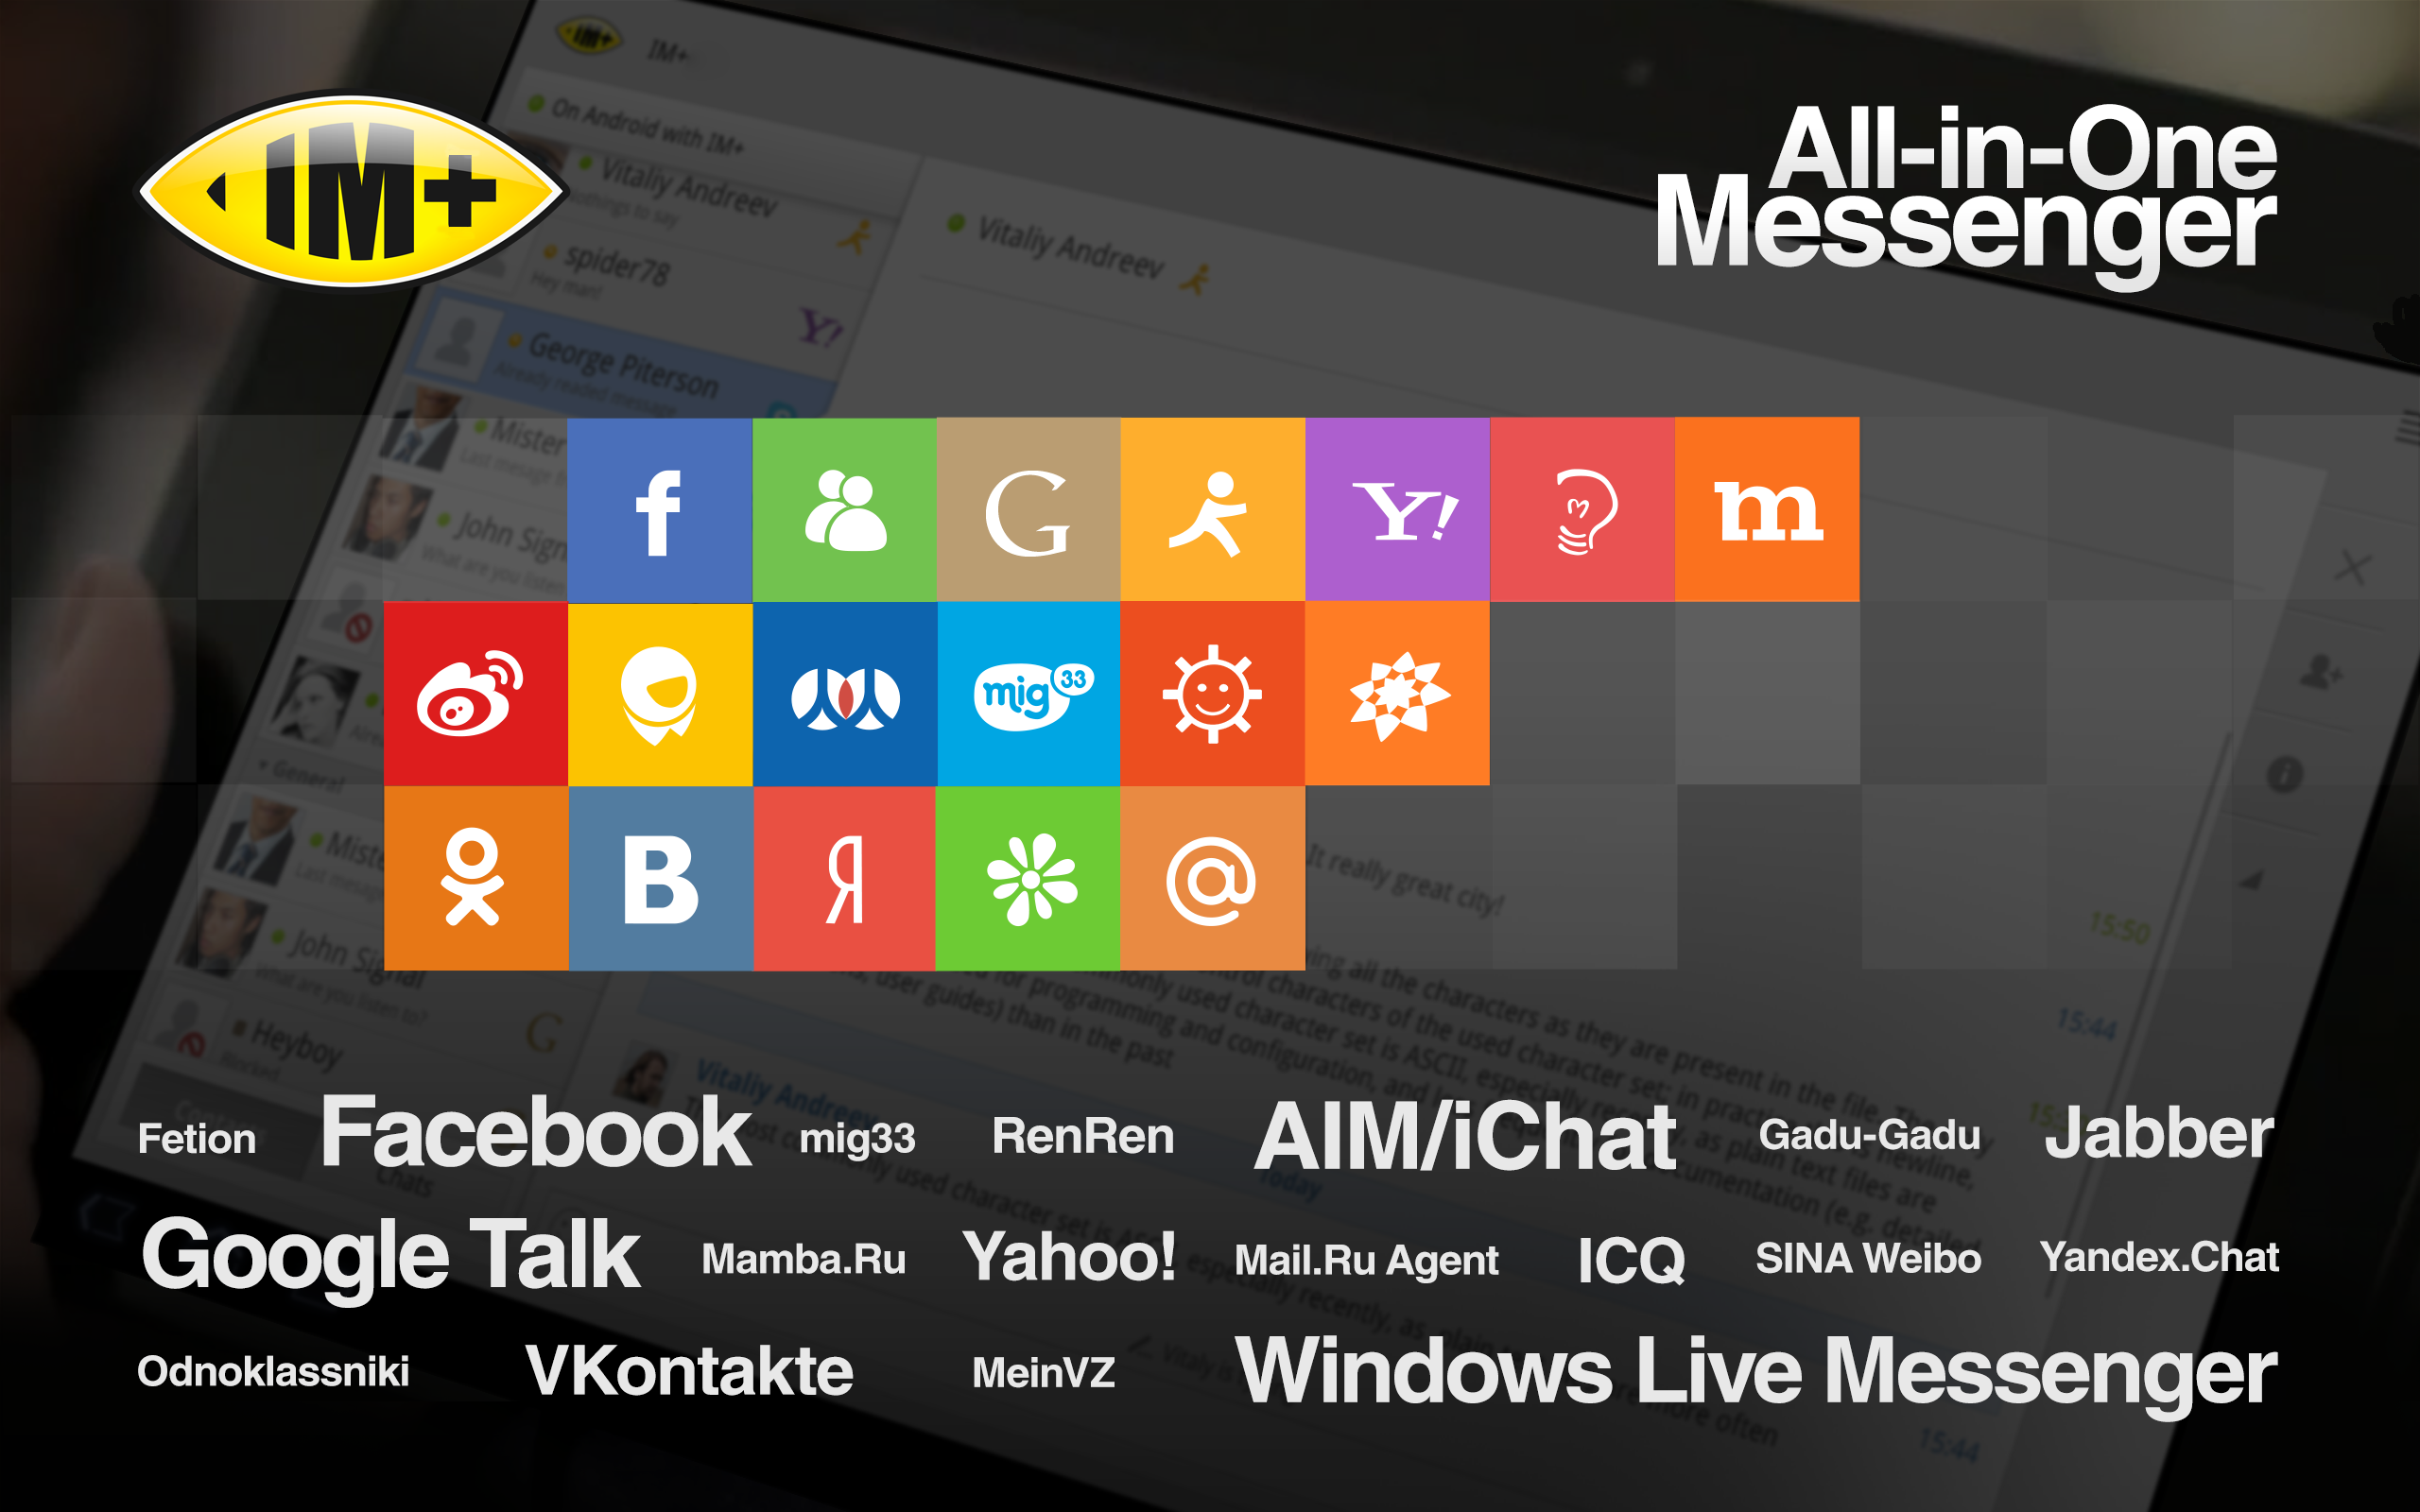 Aio windows live messenger team dst